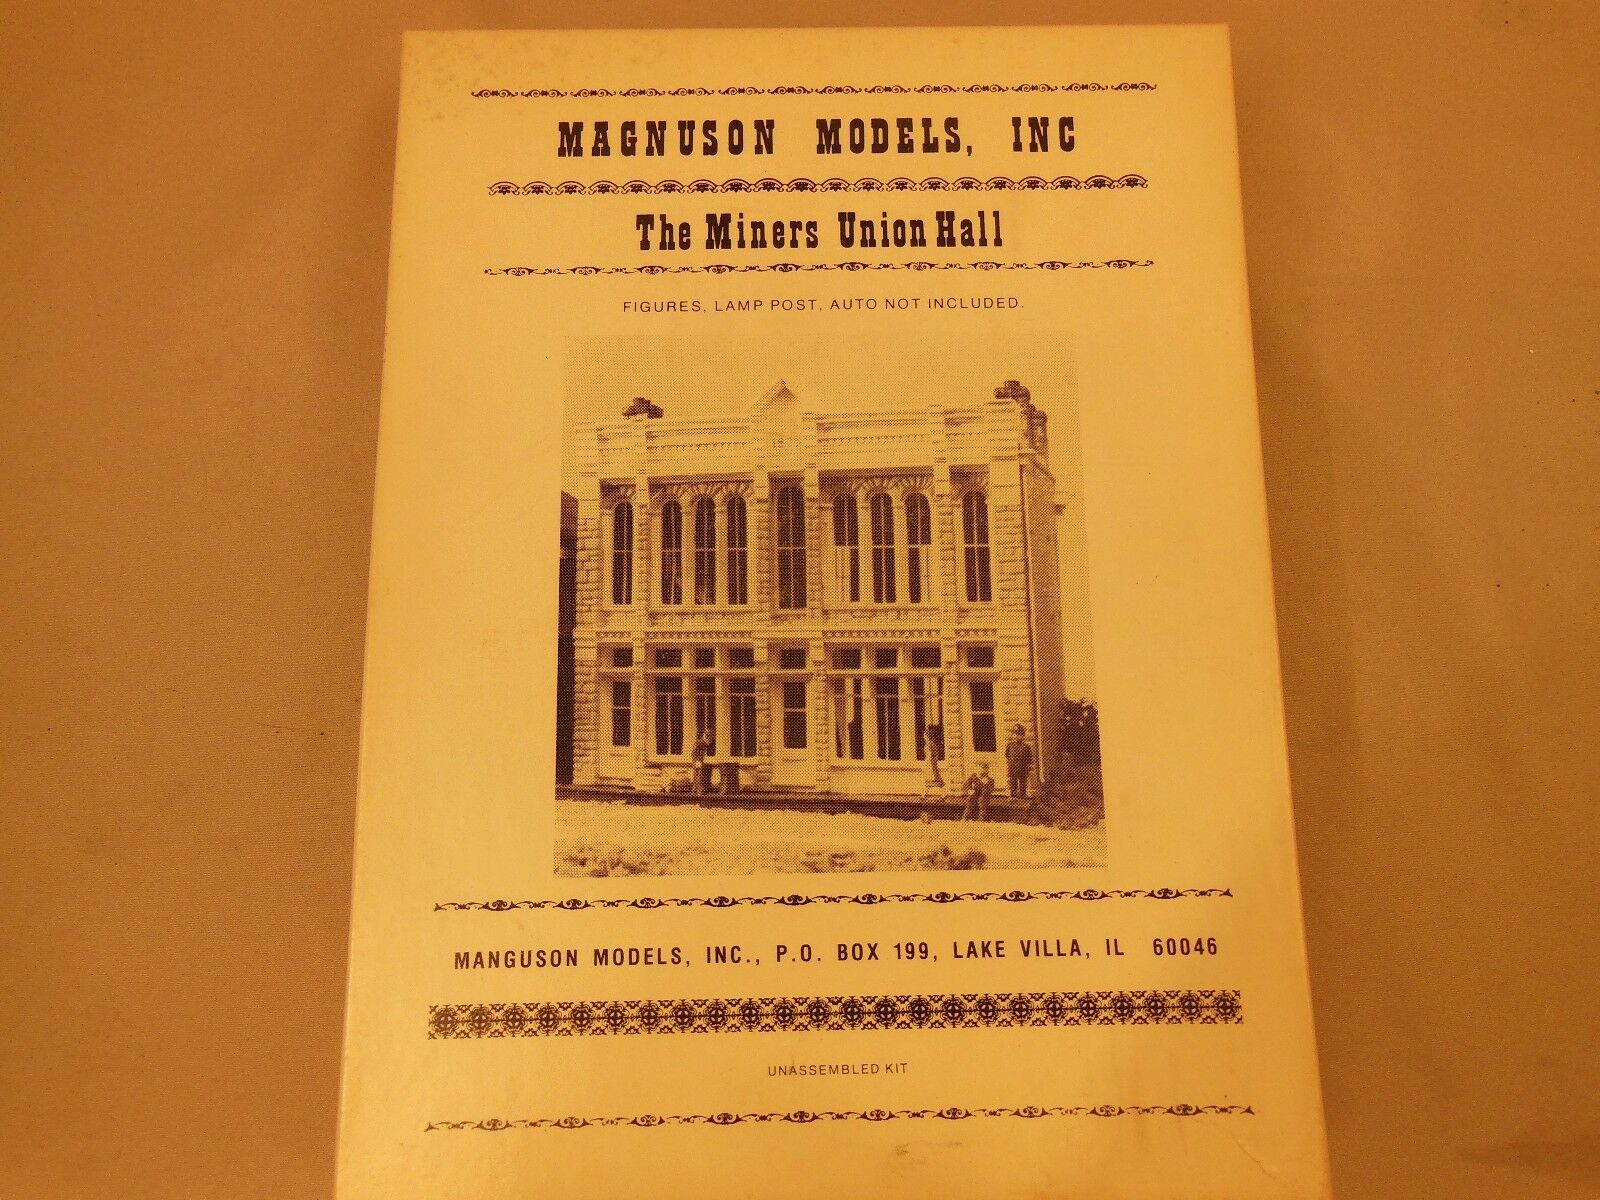 HO SCALE MAGNUSON MODELS NO. M502 THE MINERS UNION HALL STRUCTURE KIT